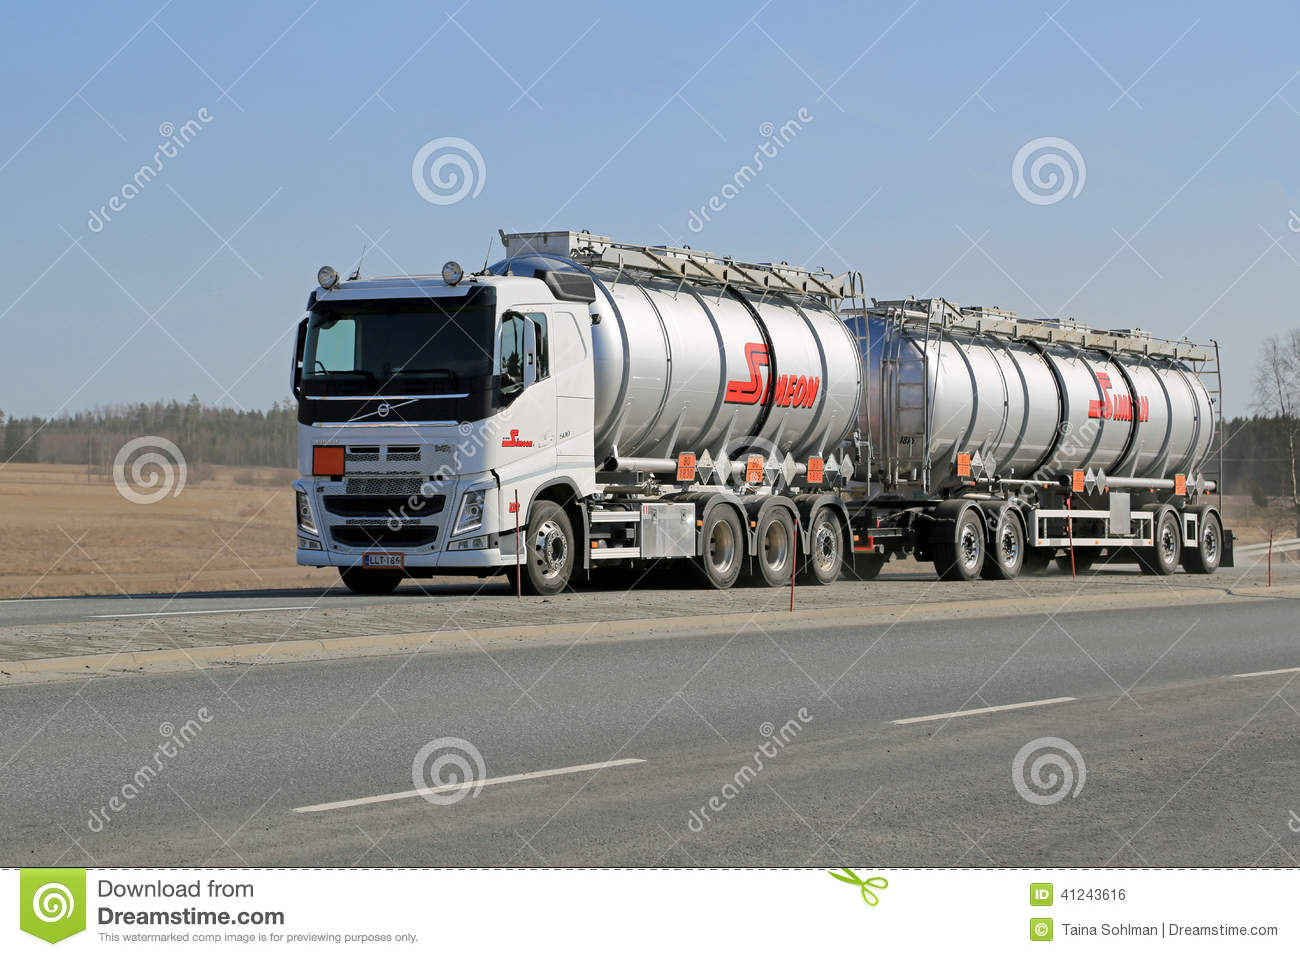 Tractor With Tanker : Tractor trailer tanker truck editorial photo